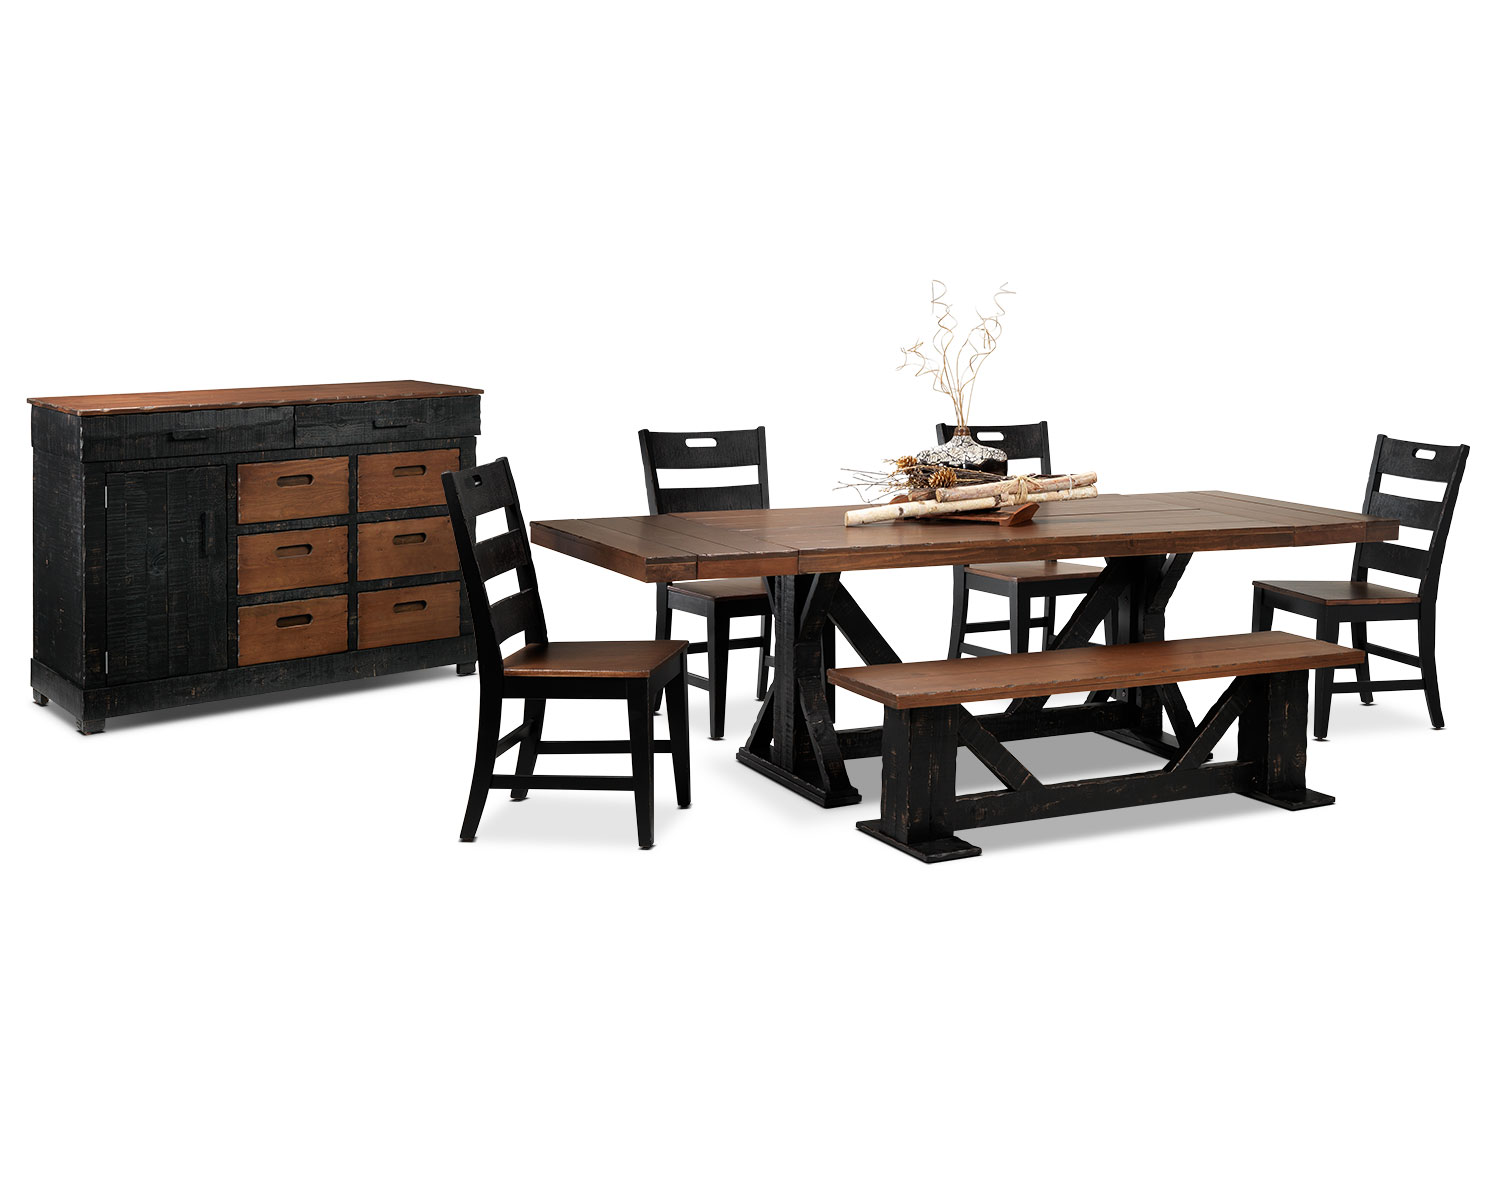 The Larenzo Dining Room Collection